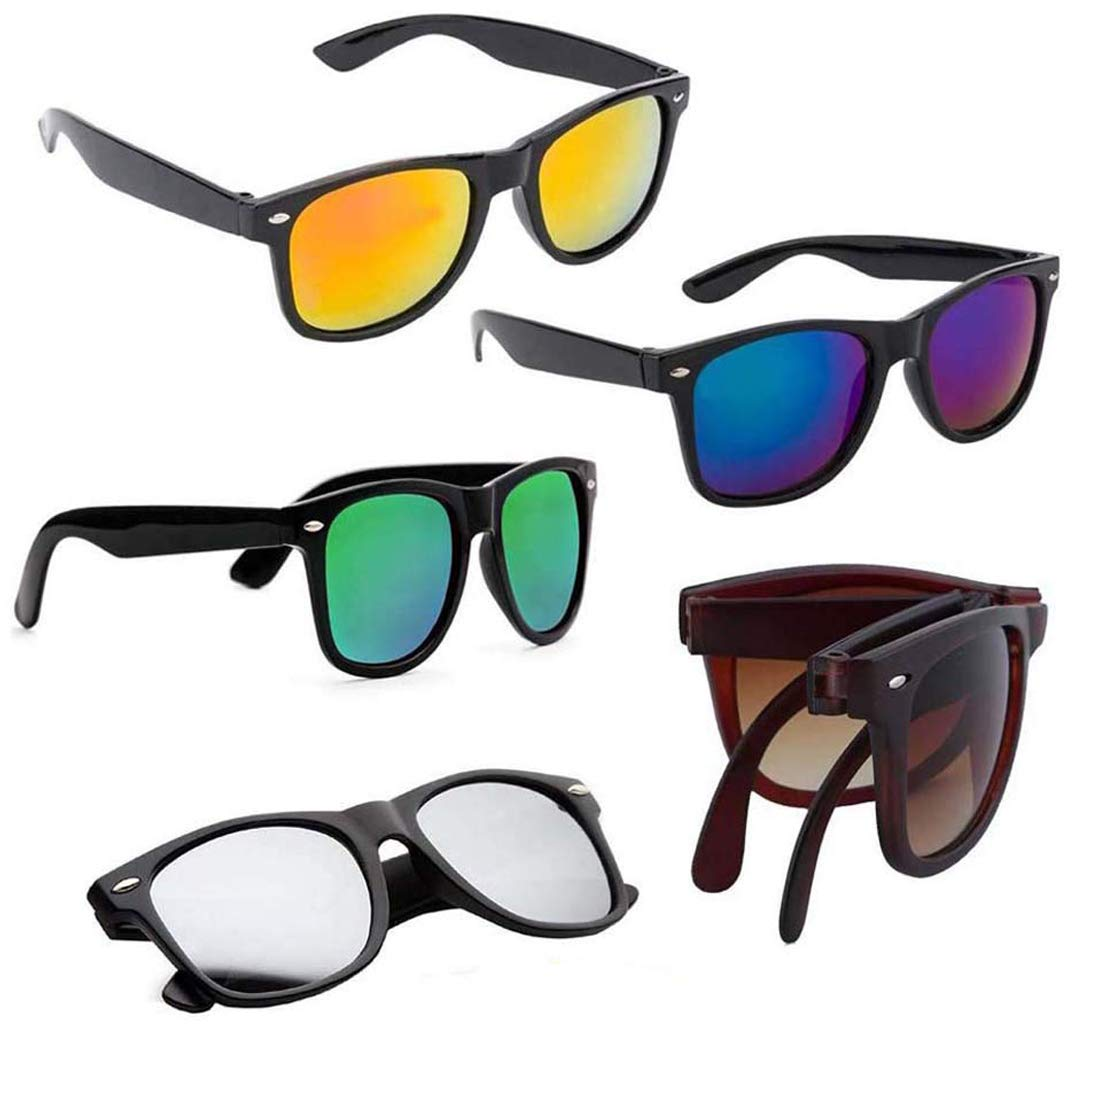 ELLIGATOR UV Protected Combo of Unisex Sunglasses (3, Multicolour)